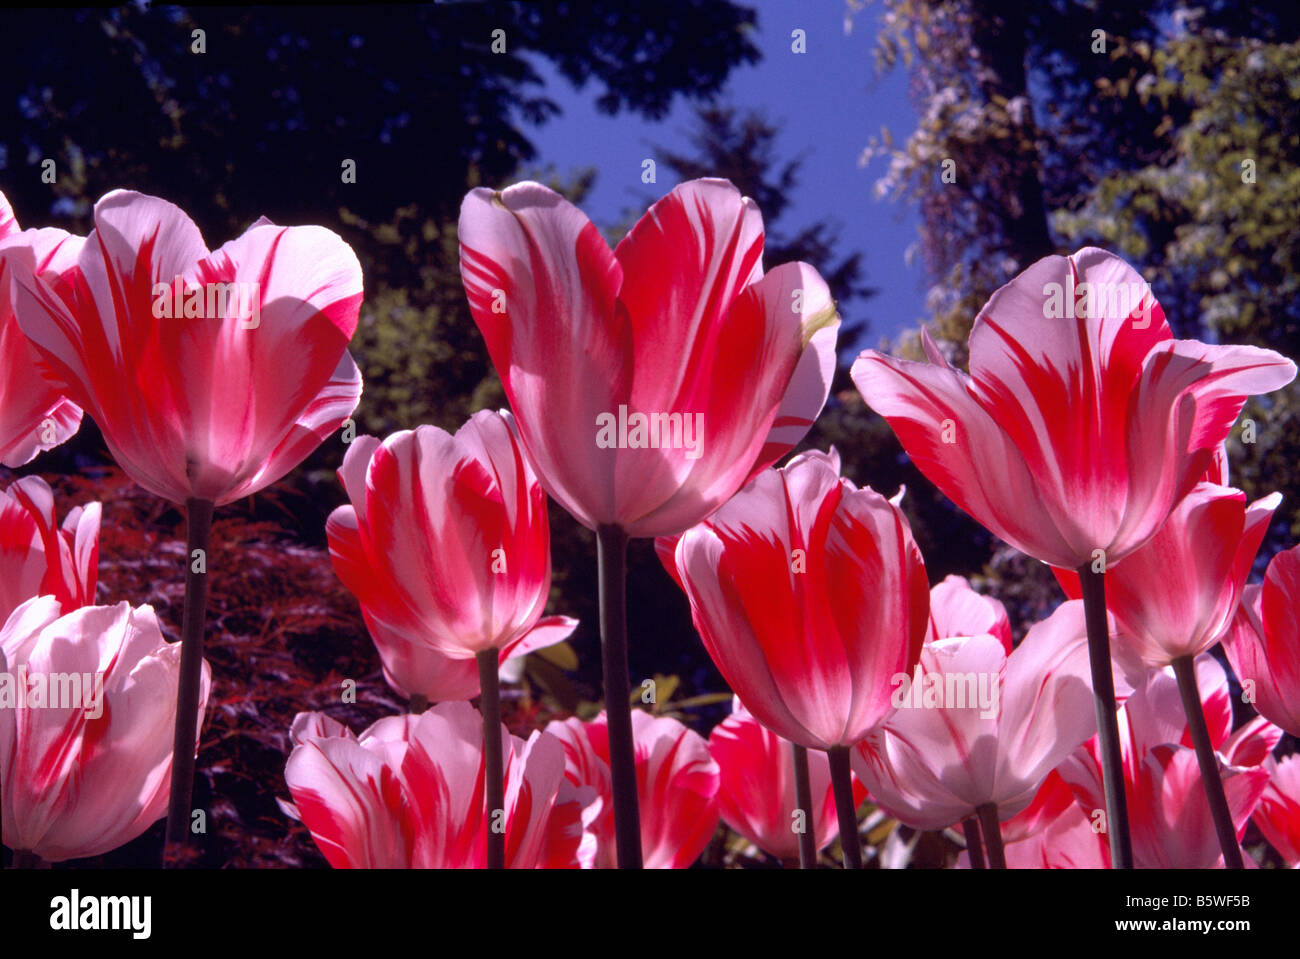 Red And White Tulips Tulip Bloom Spring Flowers Blooming Flower